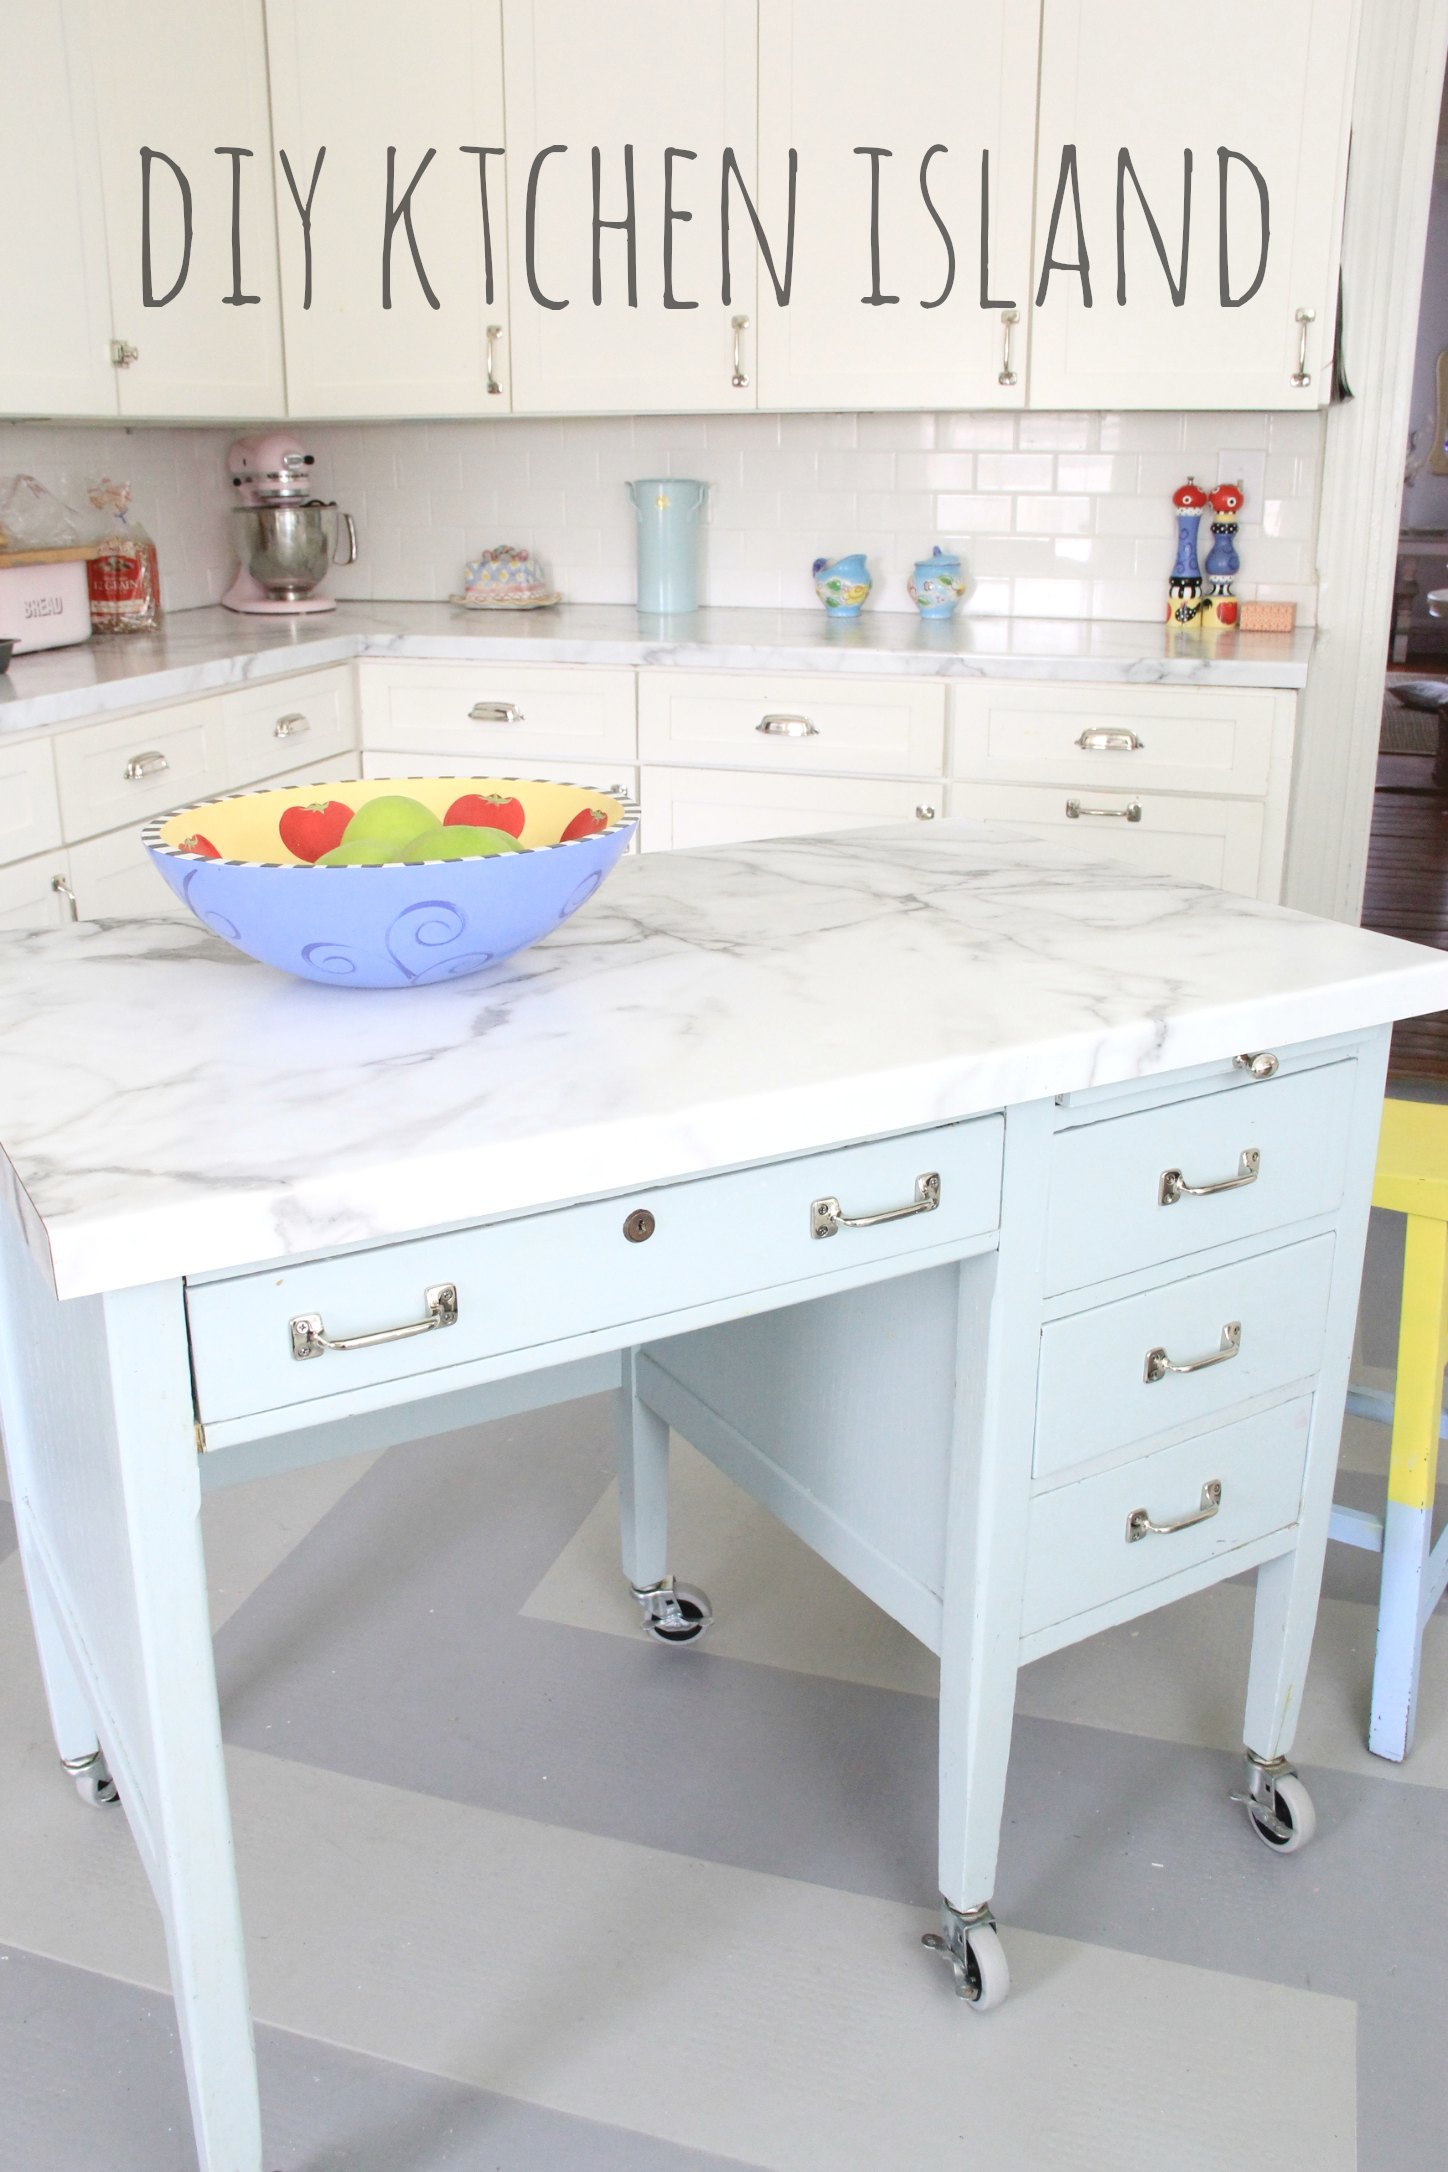 LINDSEYS KITCHEN THE FINAL REVEAL!  Elements of Style Blog